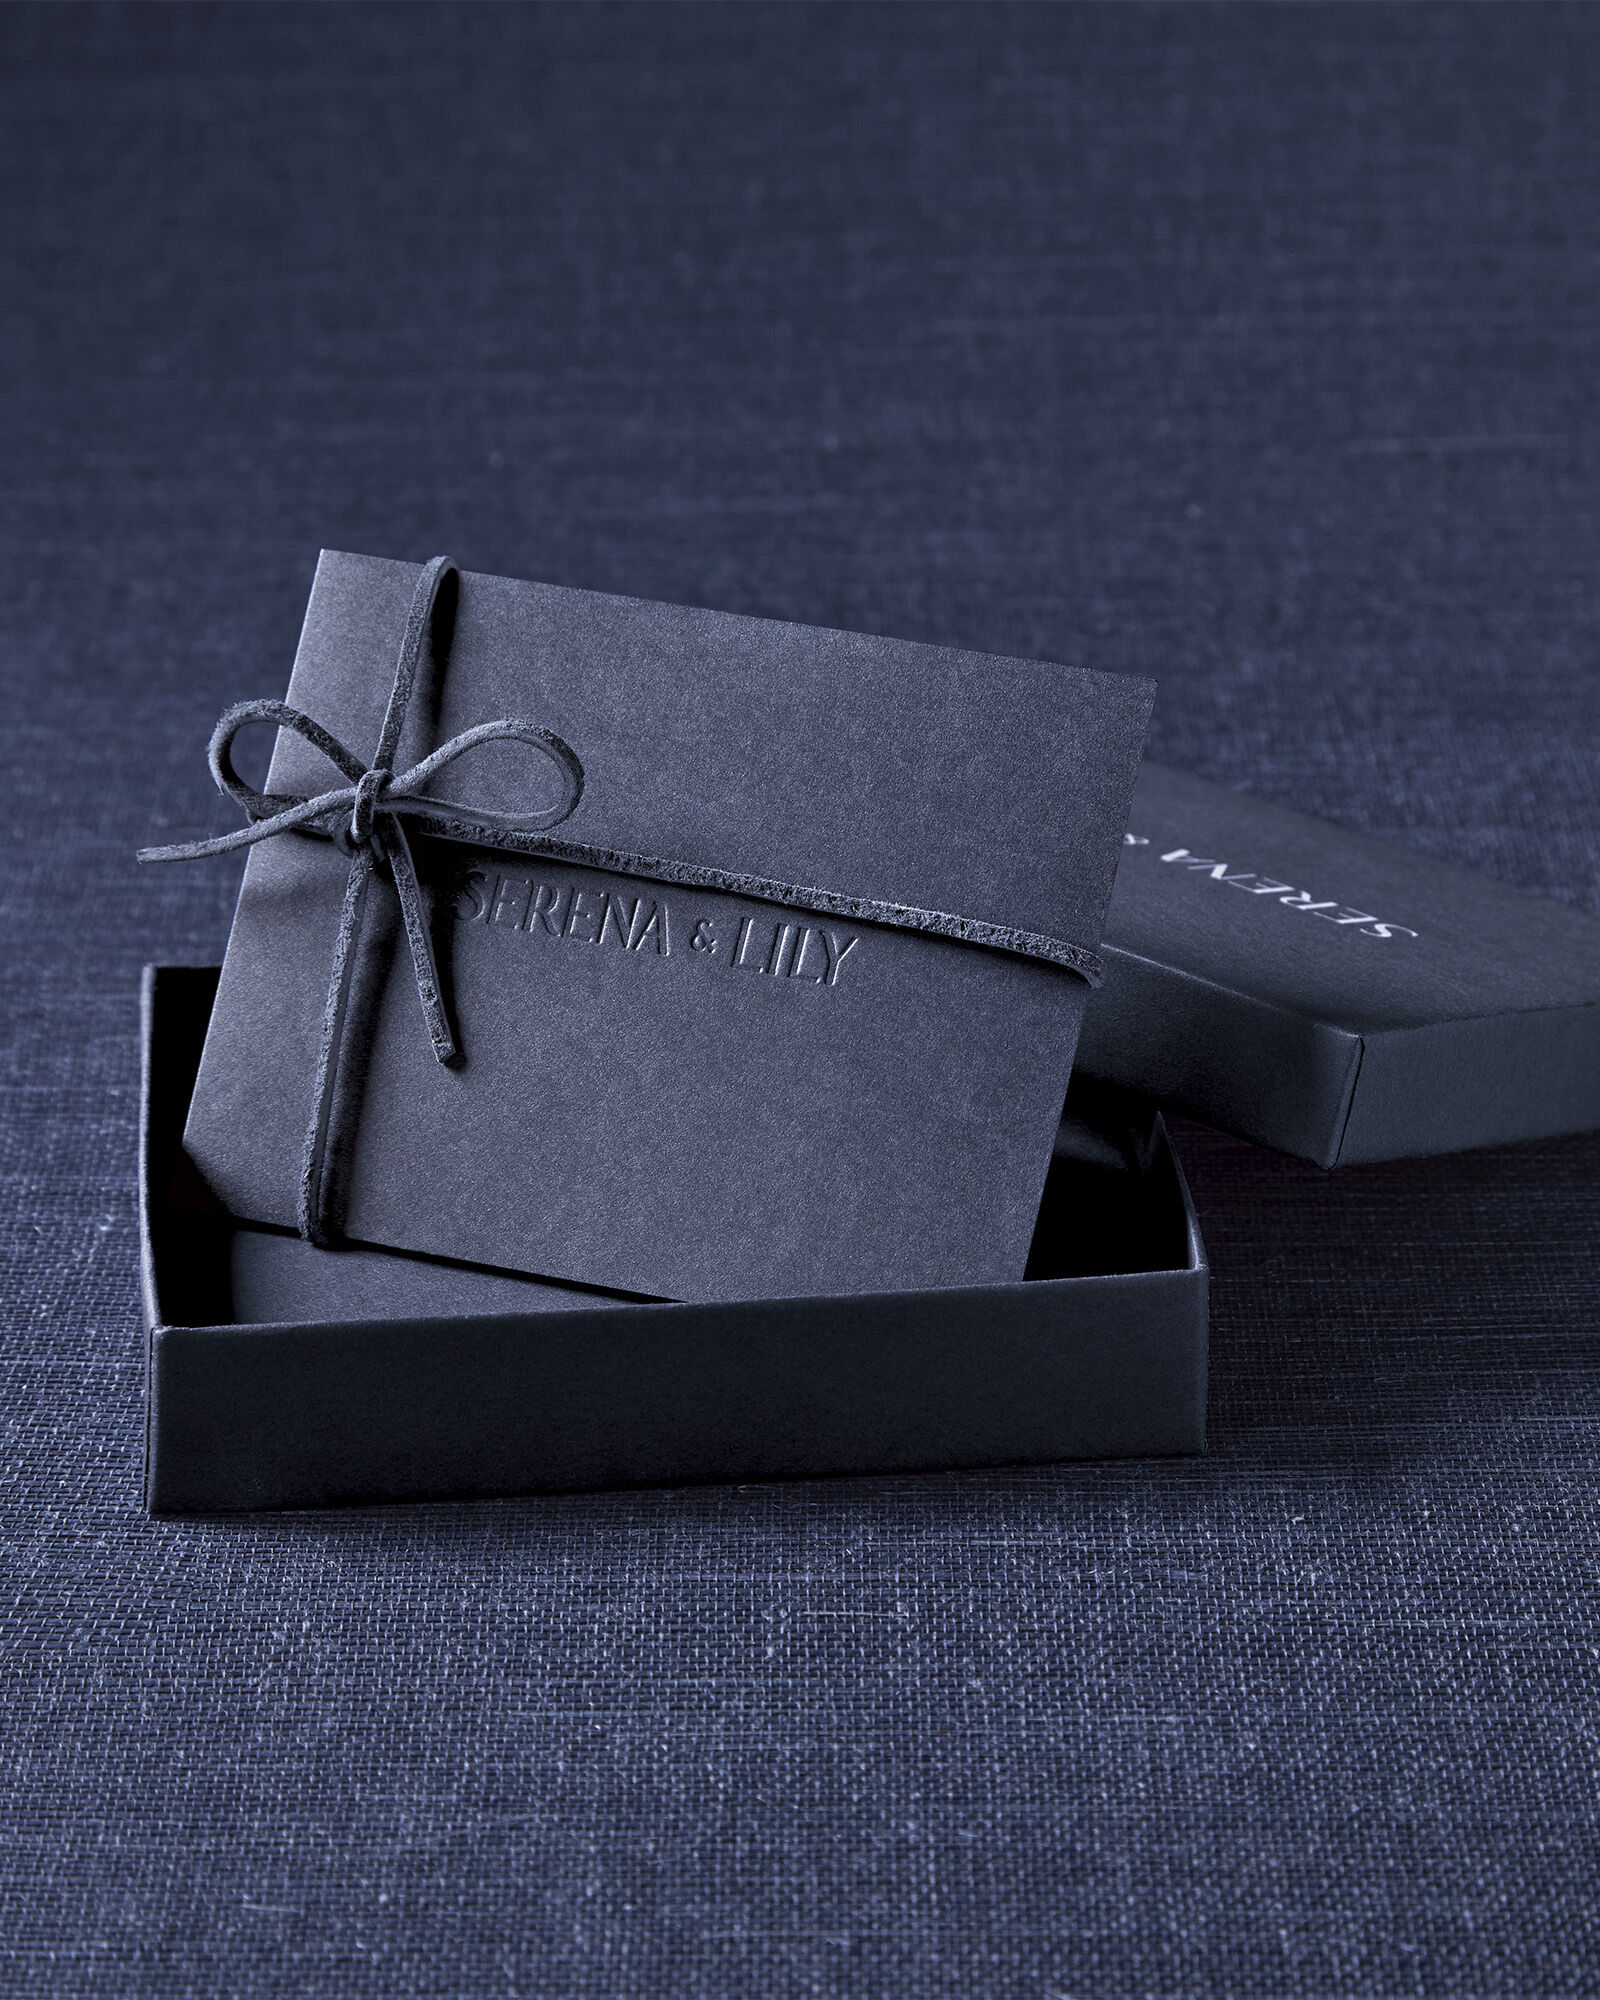 The Serena & Lily Gift Certificate,